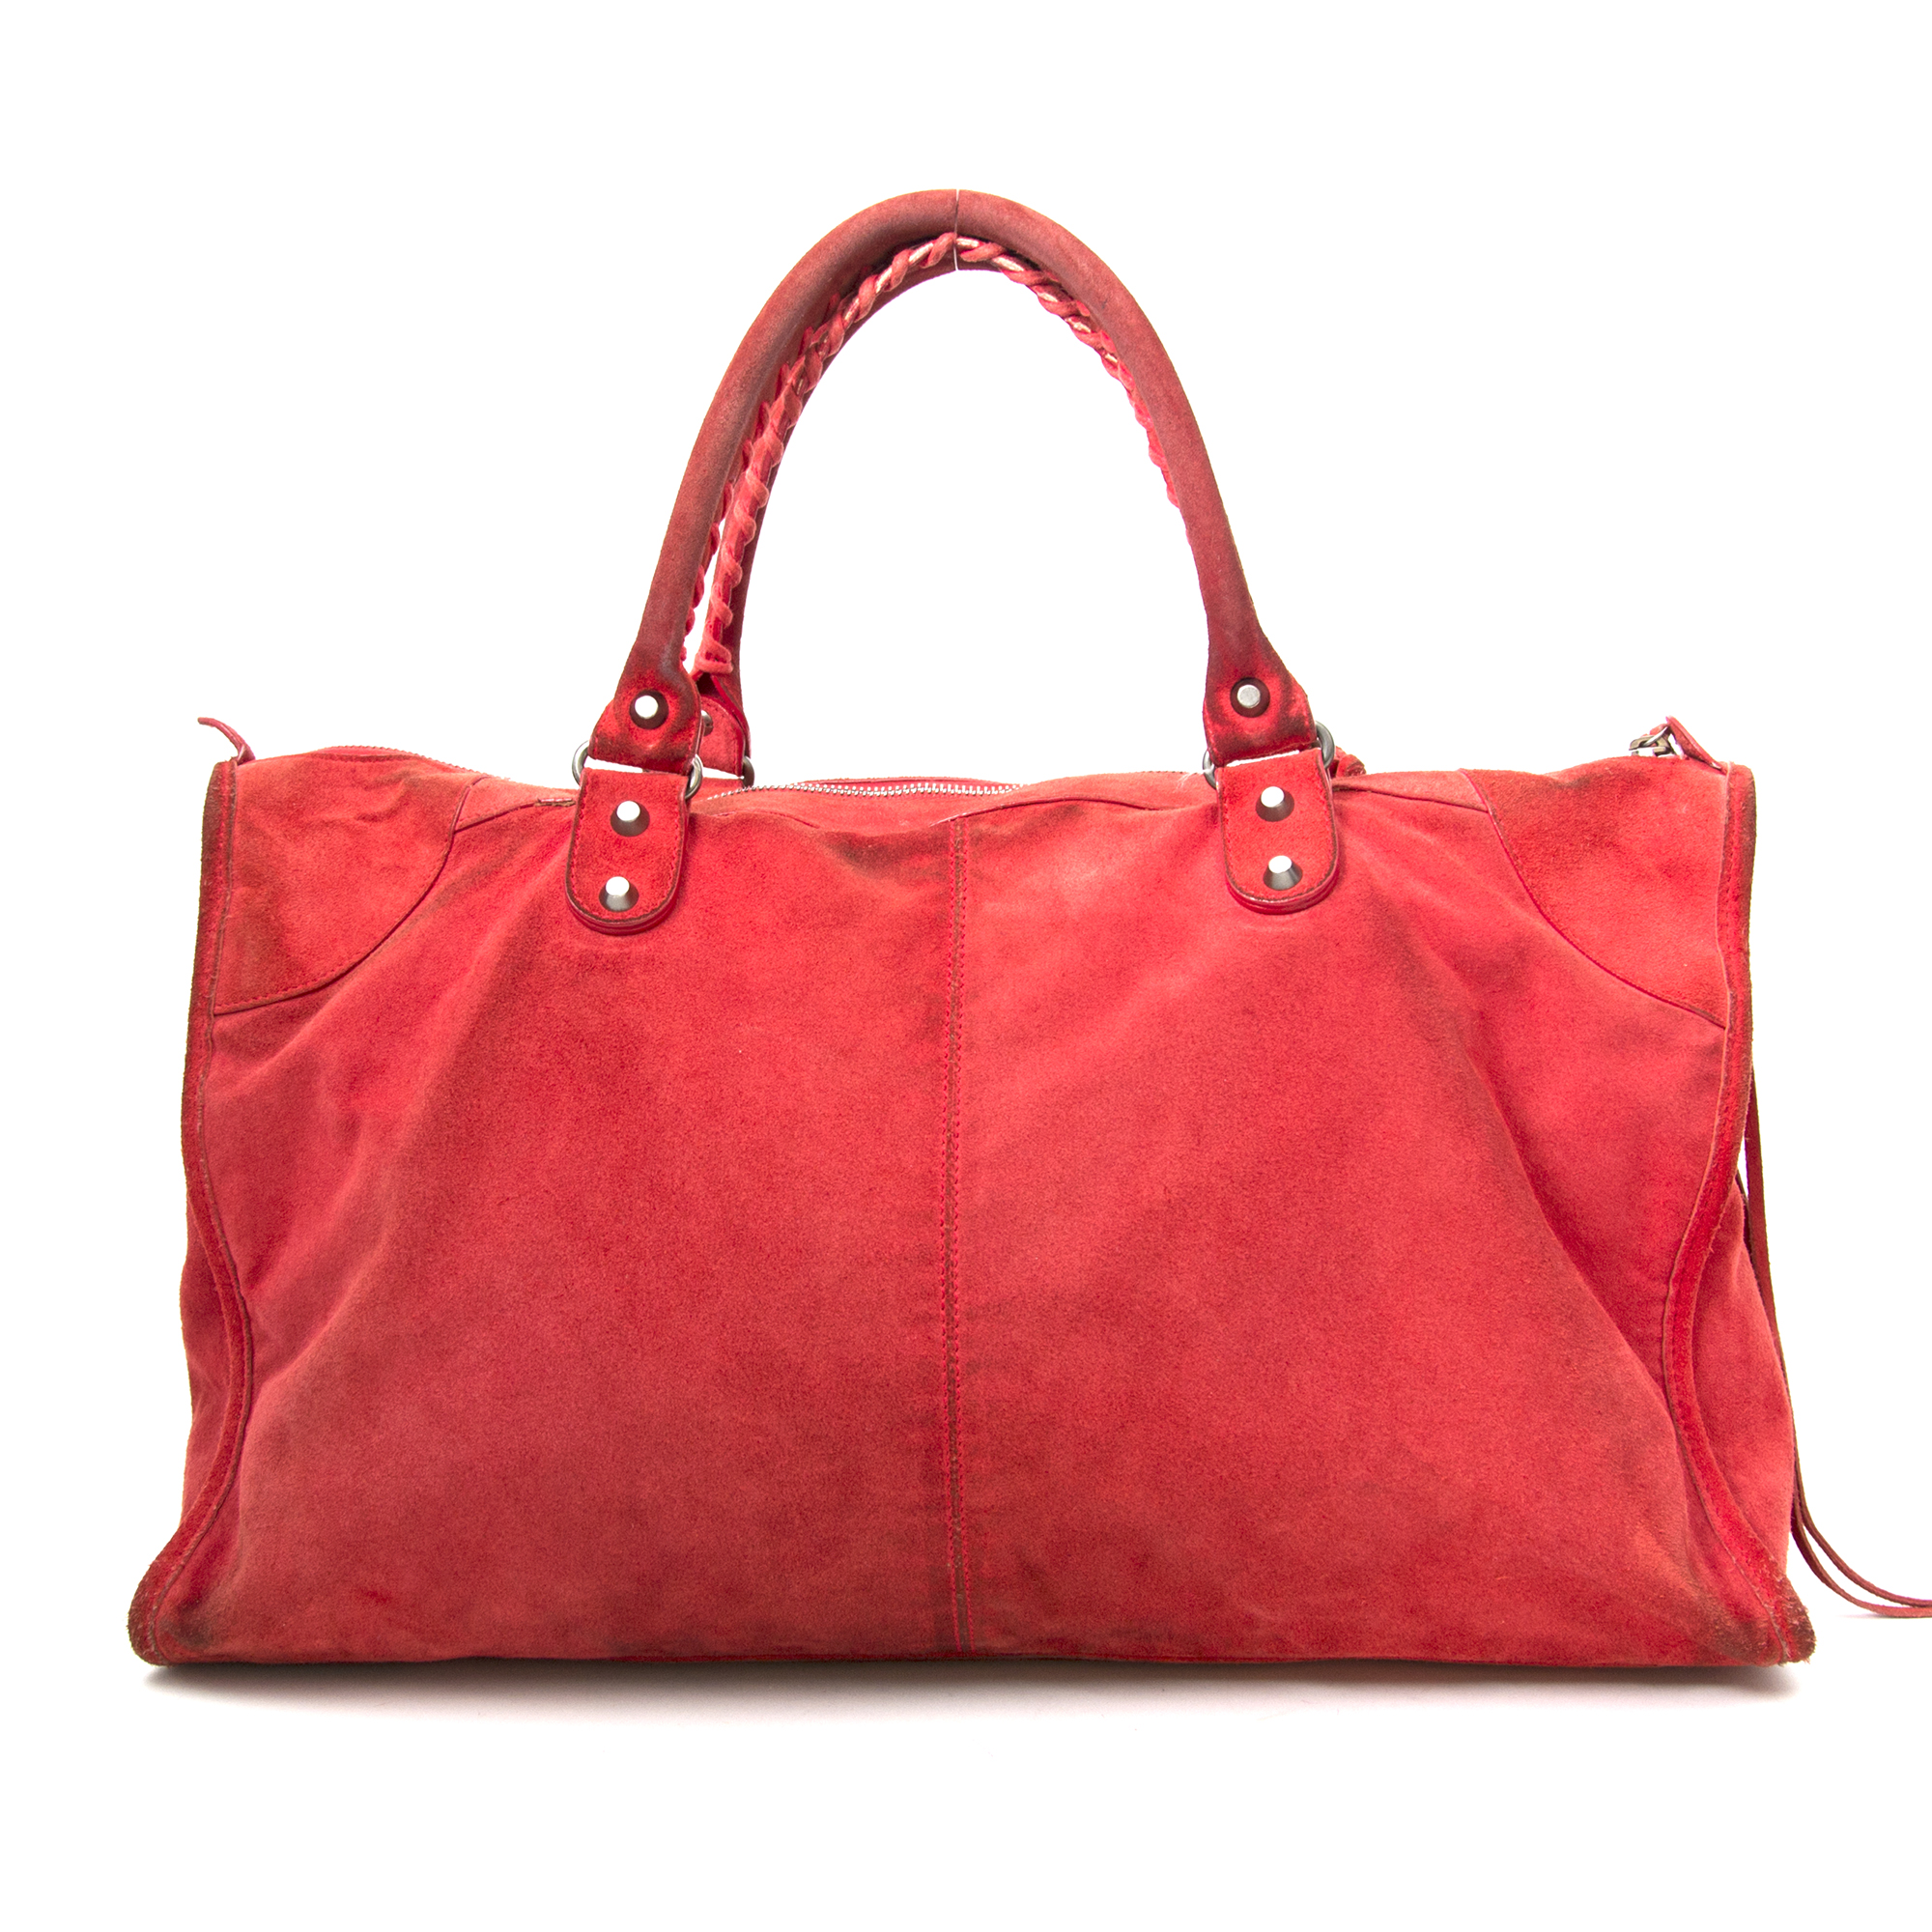 Vintage Balenciaga red work bag for the best price at Labellov webshop. Safe and secure online shopping with 100% authenticity. Vintage Balenciaga rouge work bag pour le meilleur prix.